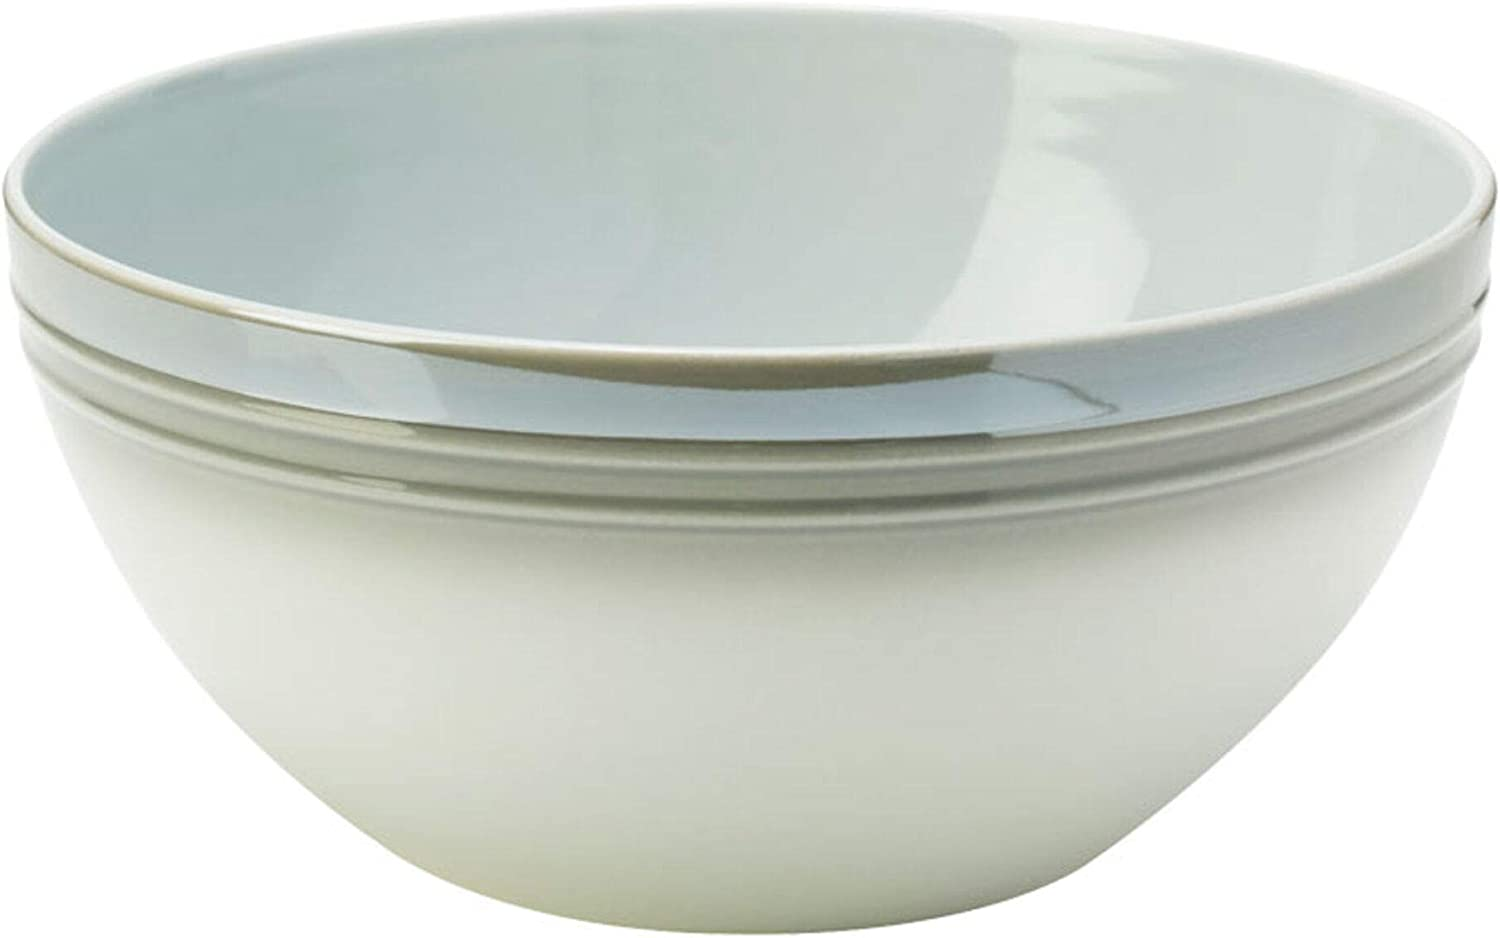 Discount is also Manufacturer direct delivery underway Mikasa Elura Gray 9-Inch Serving Bowl